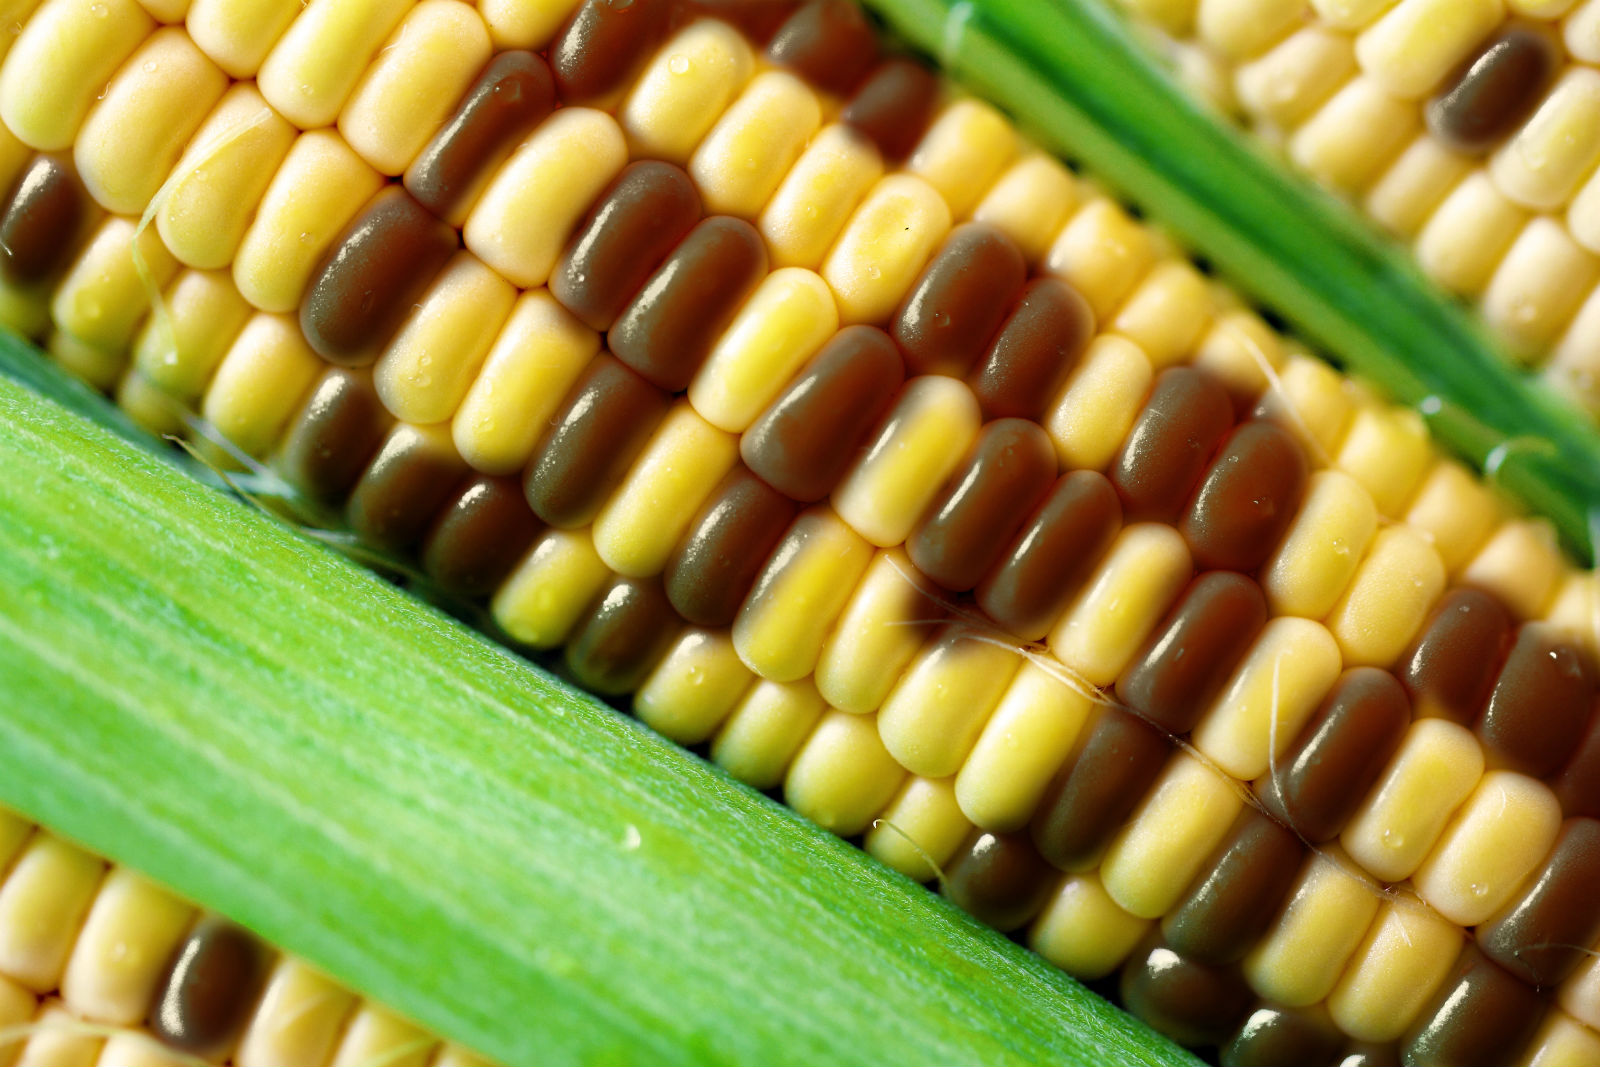 What Are GMO Foods, And Are They OK To Eat?